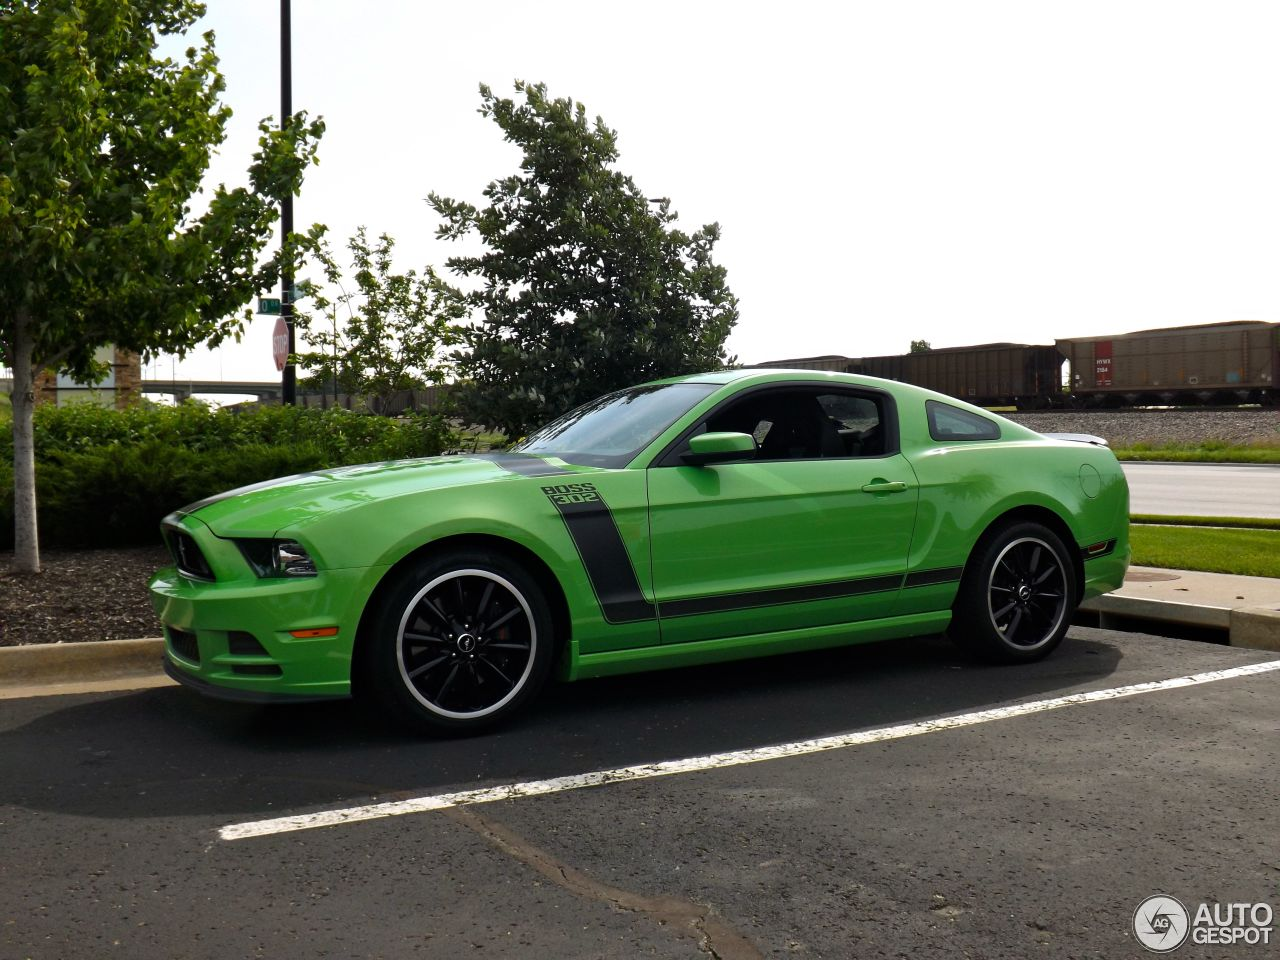 ford mustang boss 302 2013 3 july 2013 autogespot. Black Bedroom Furniture Sets. Home Design Ideas